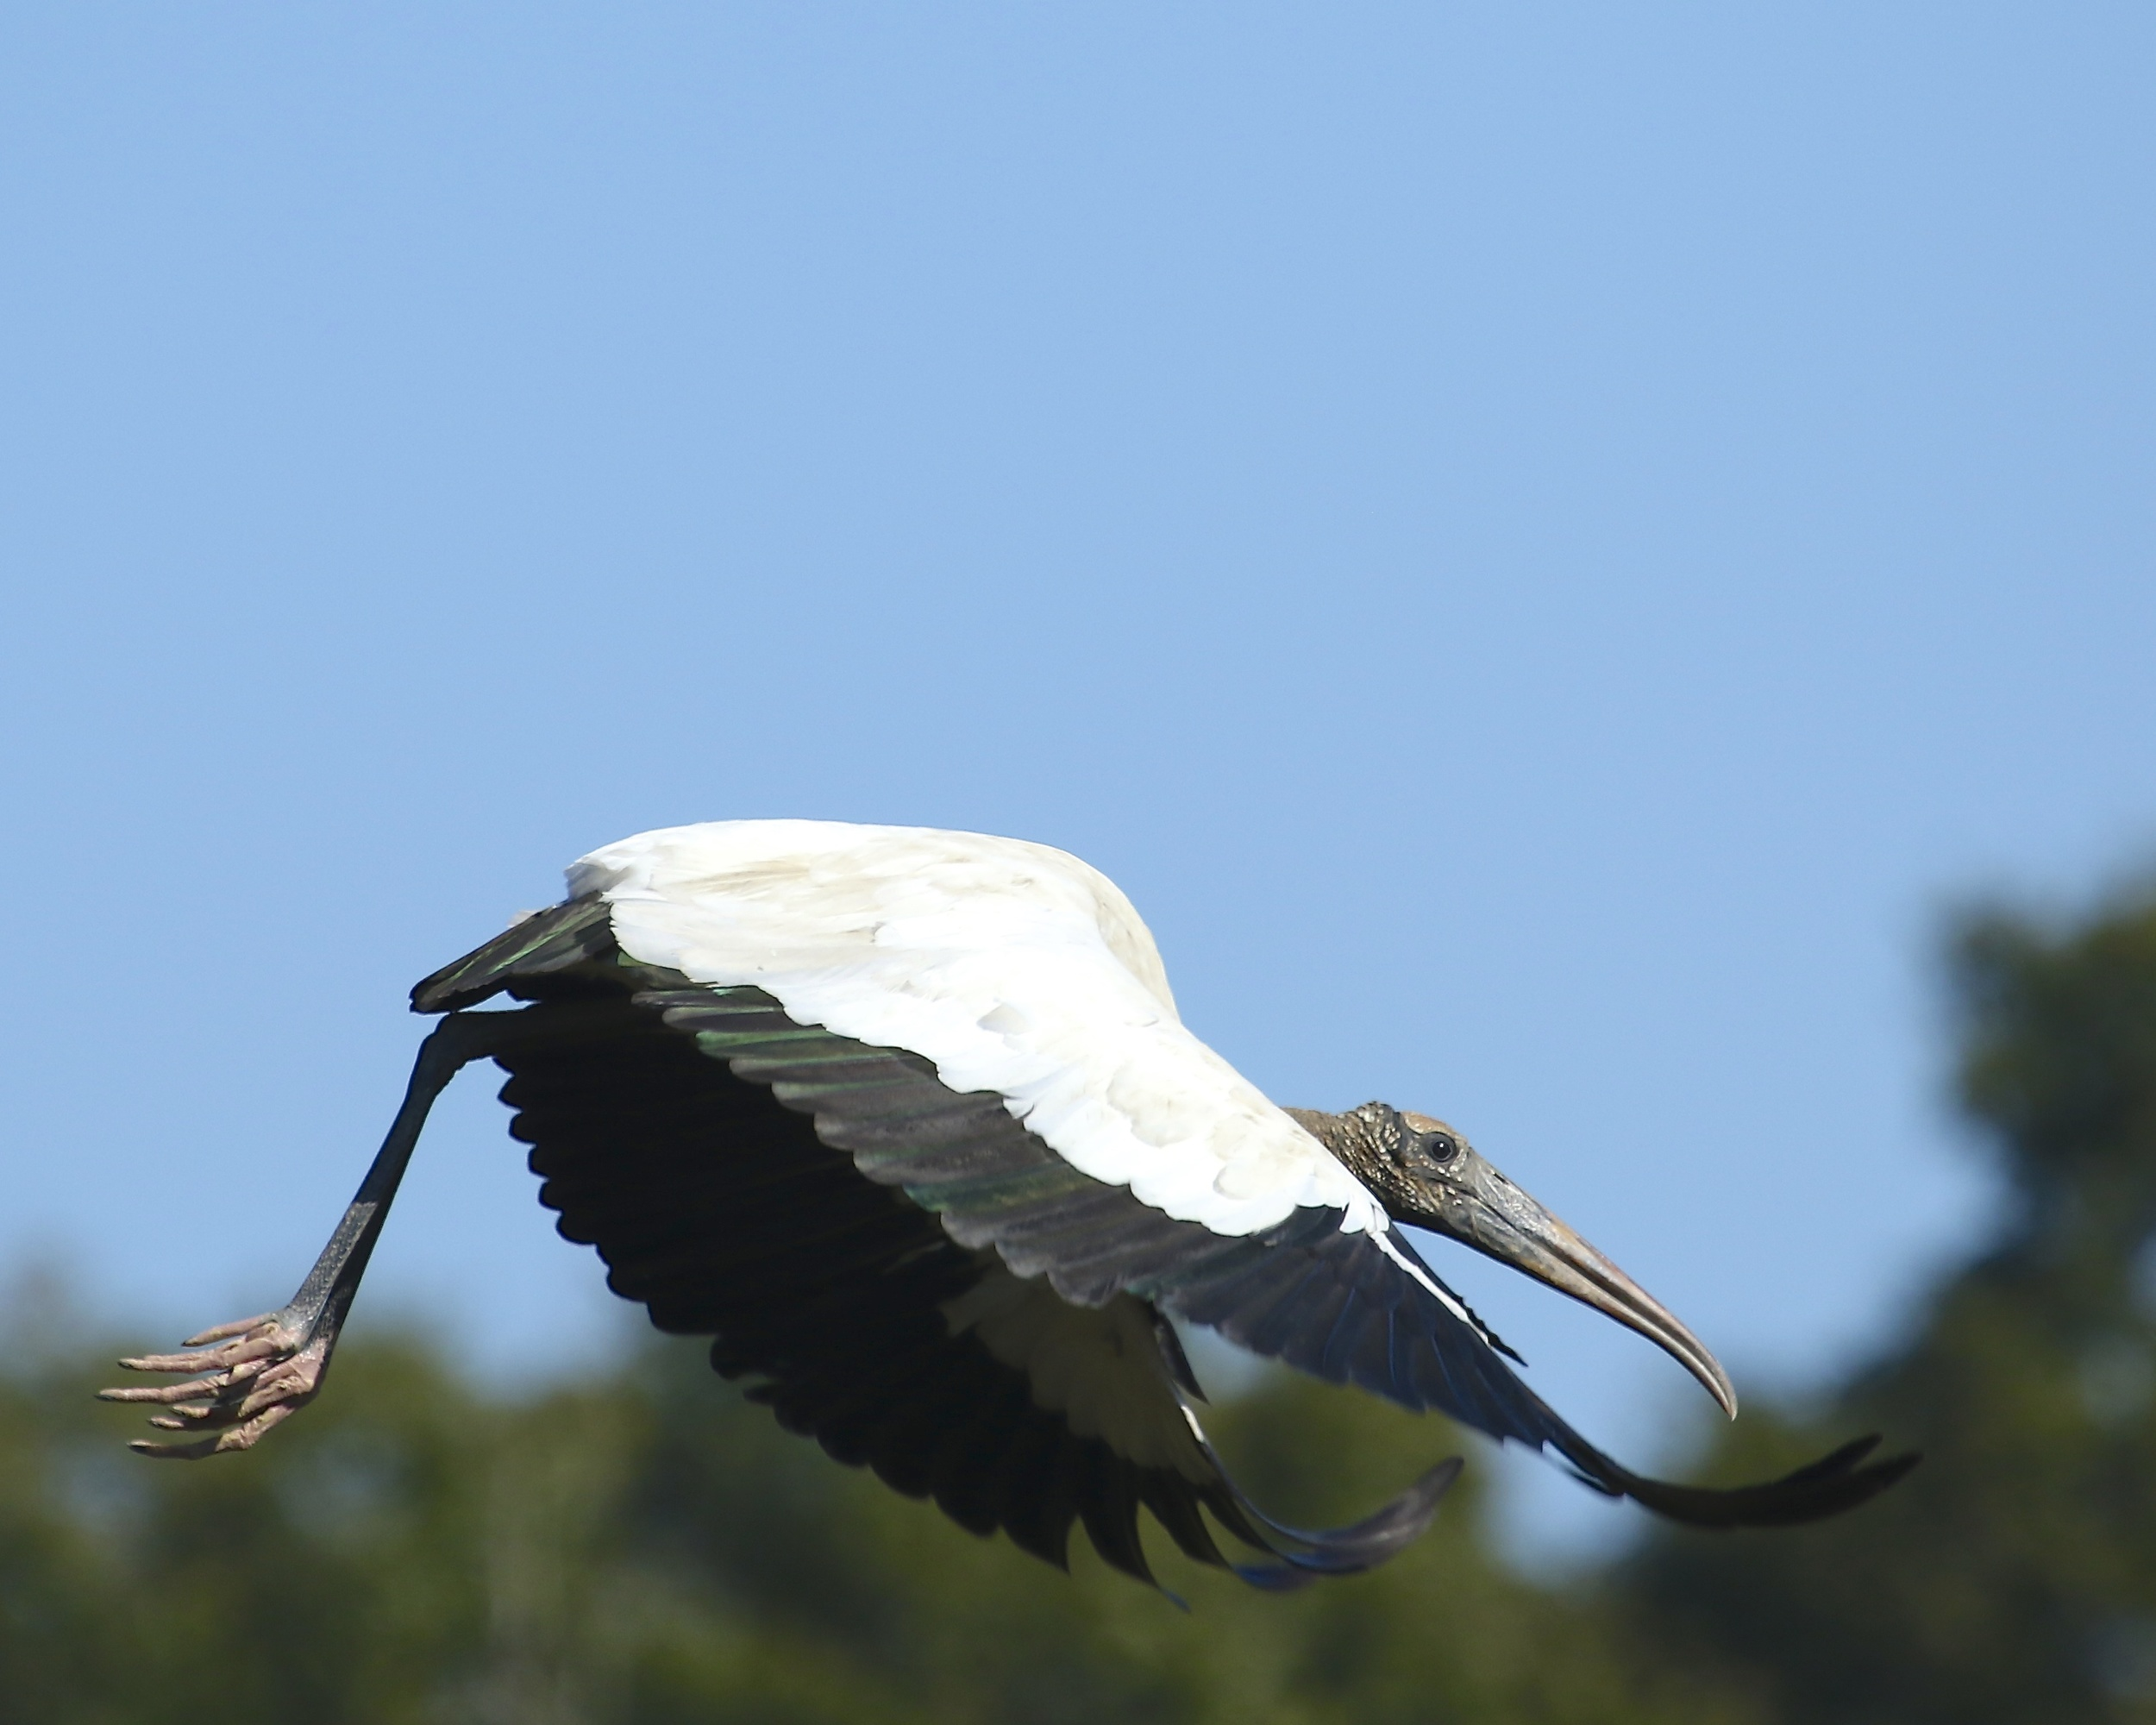 The wood stork grudgingly  gives up its roost